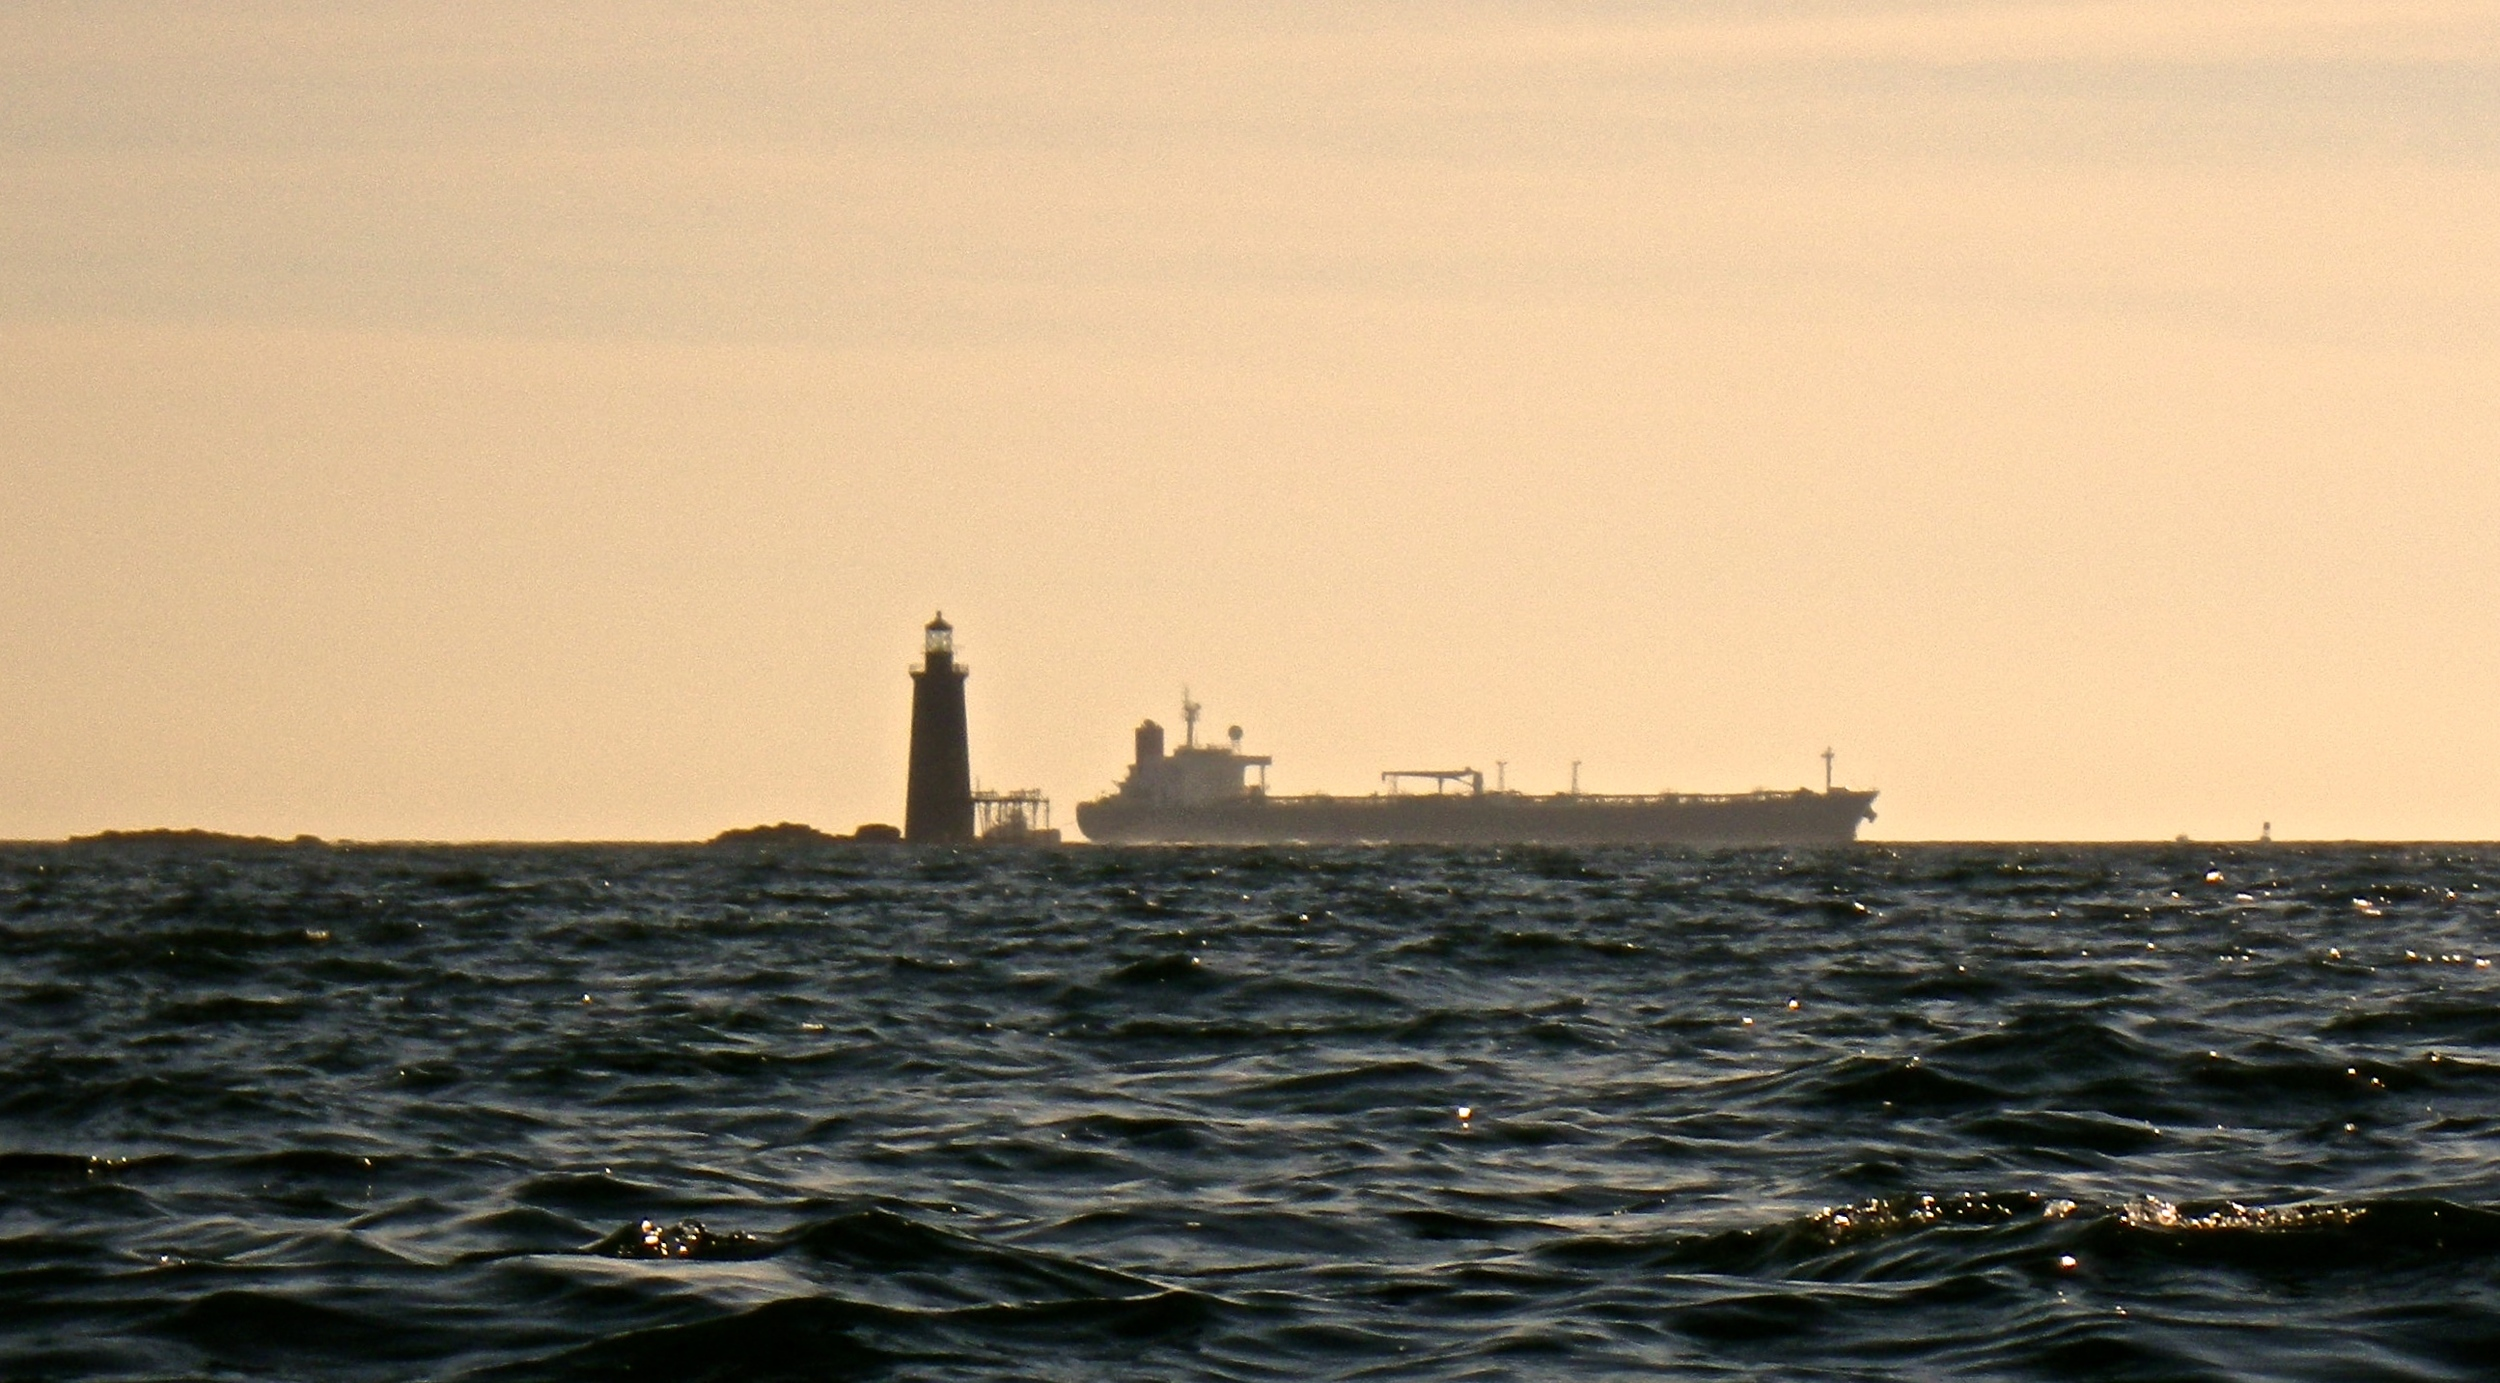 A crude oil tanker passes behind Ram Island Ledge Lighthouse (Photo: Joe Guglielmetti)